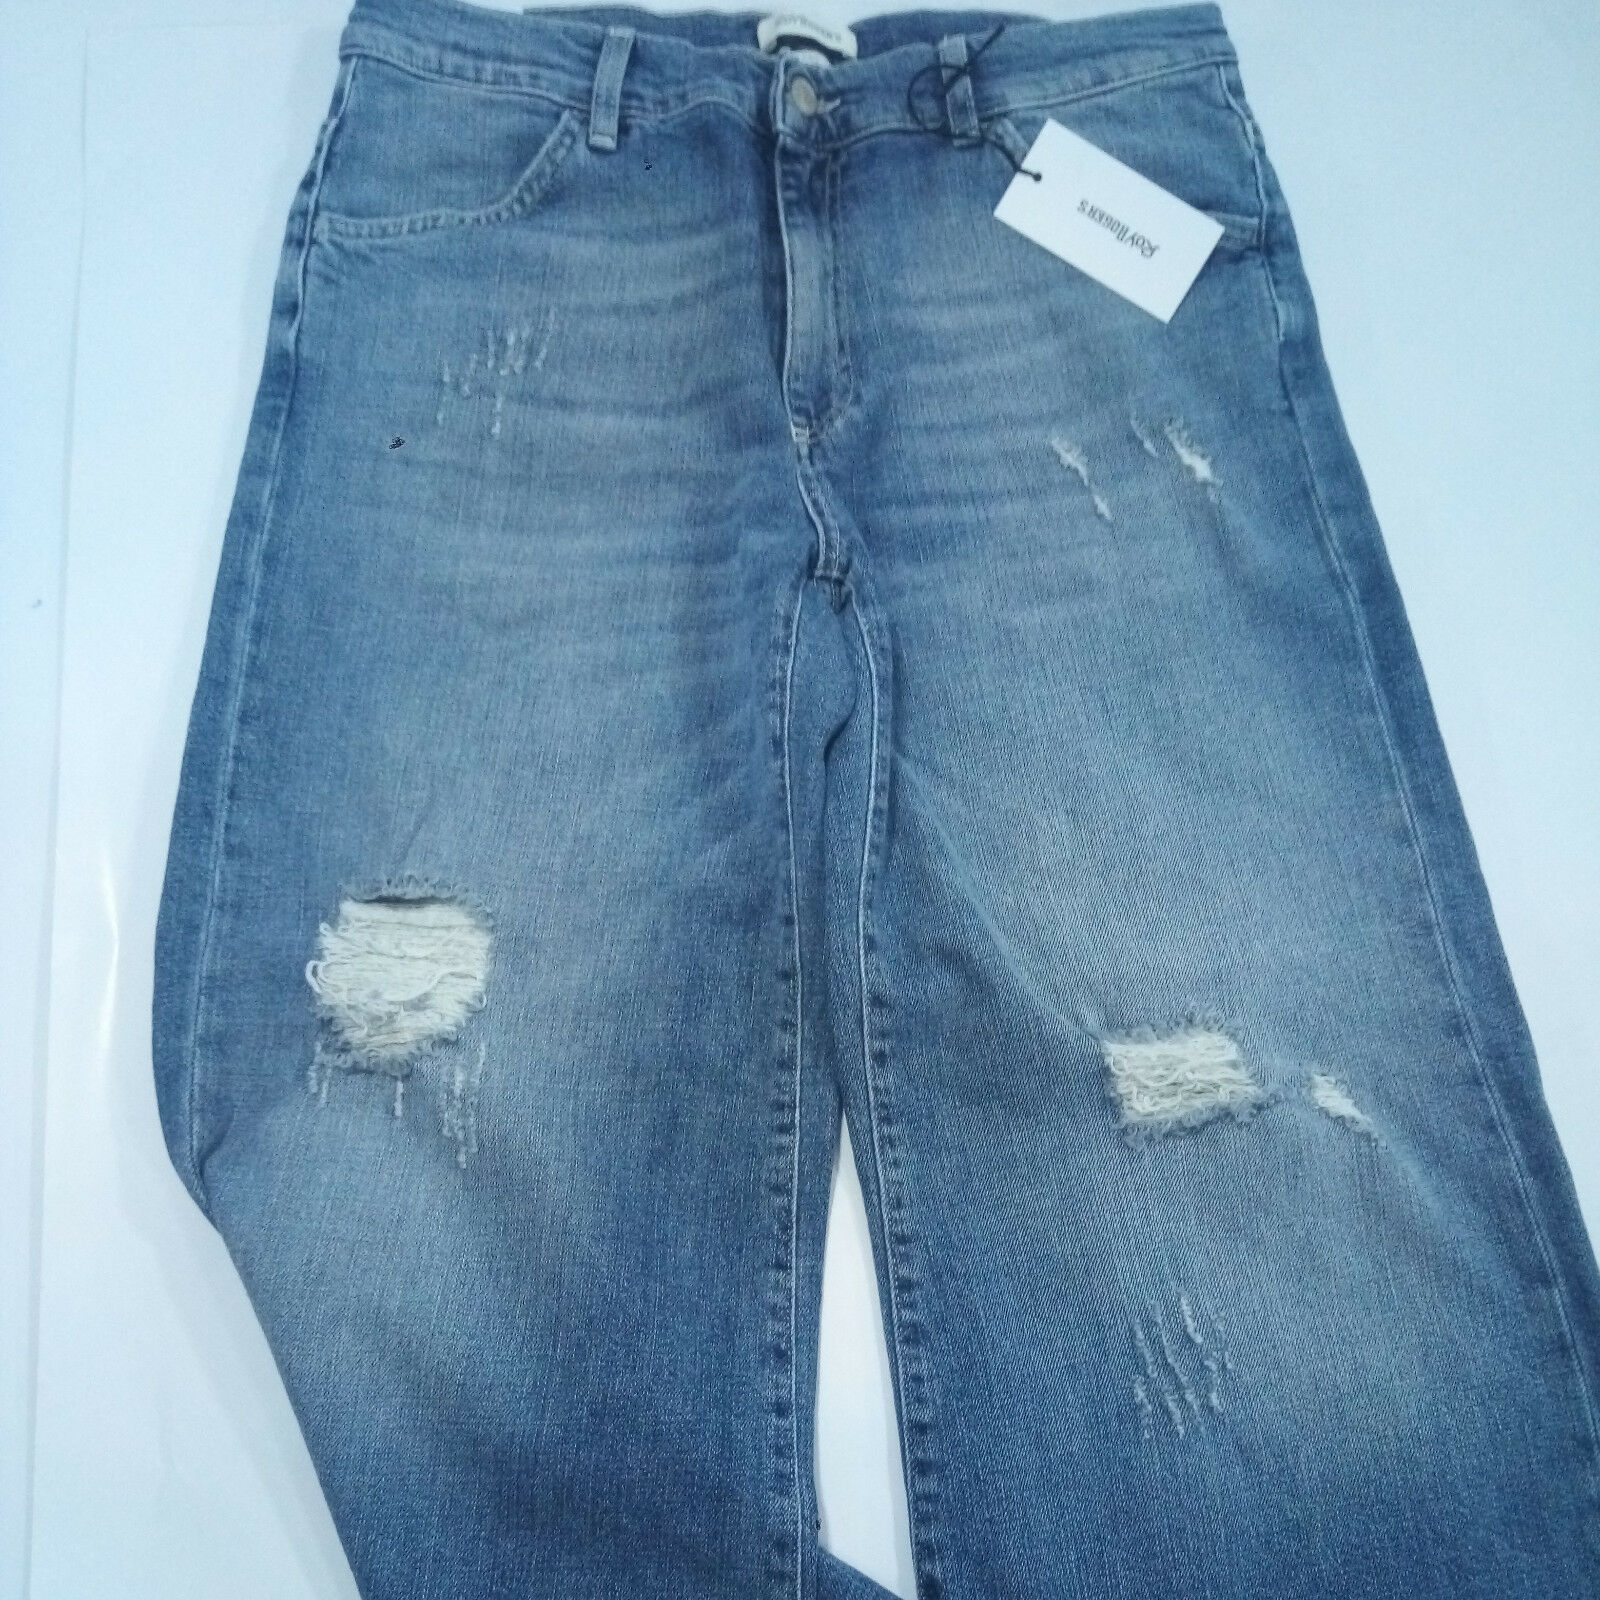 Jeans rossoto Roy Roger's Donna Donna Donna - Wolly Elasticizzato Stacey -- Jeans rossoto f92ef9